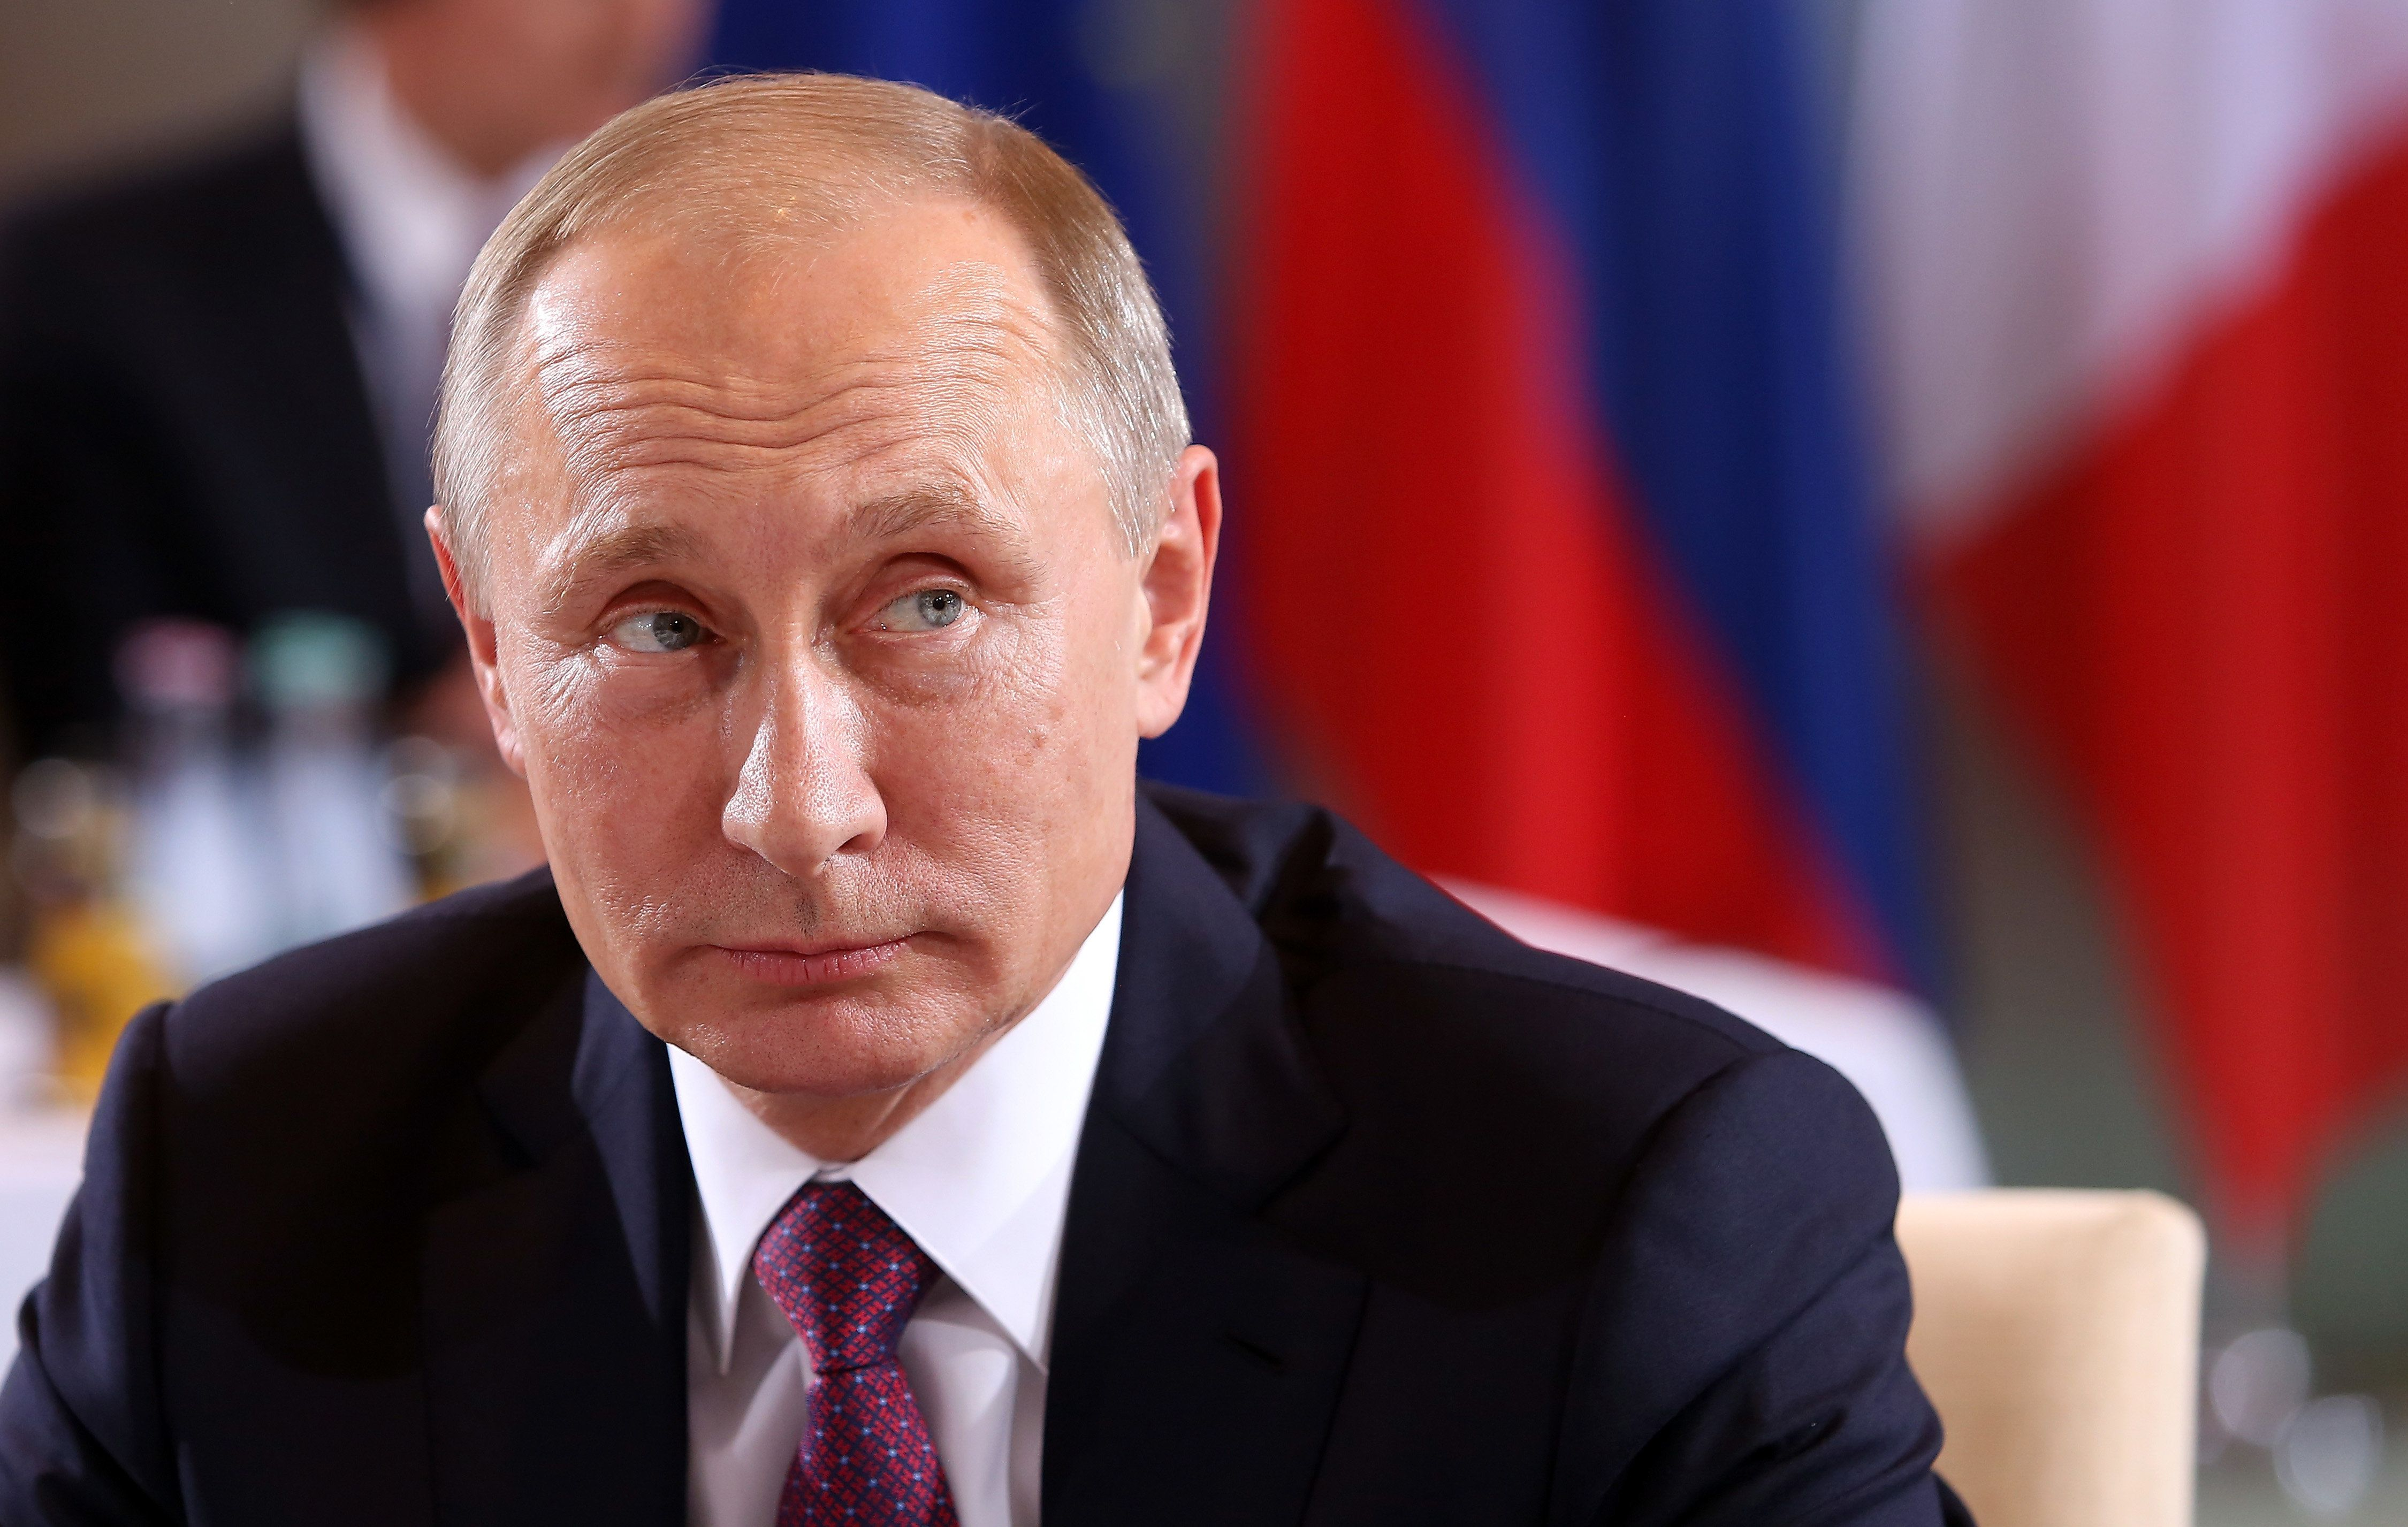 Putin Does Not Deny That Russia Has 'Compromising Material' On